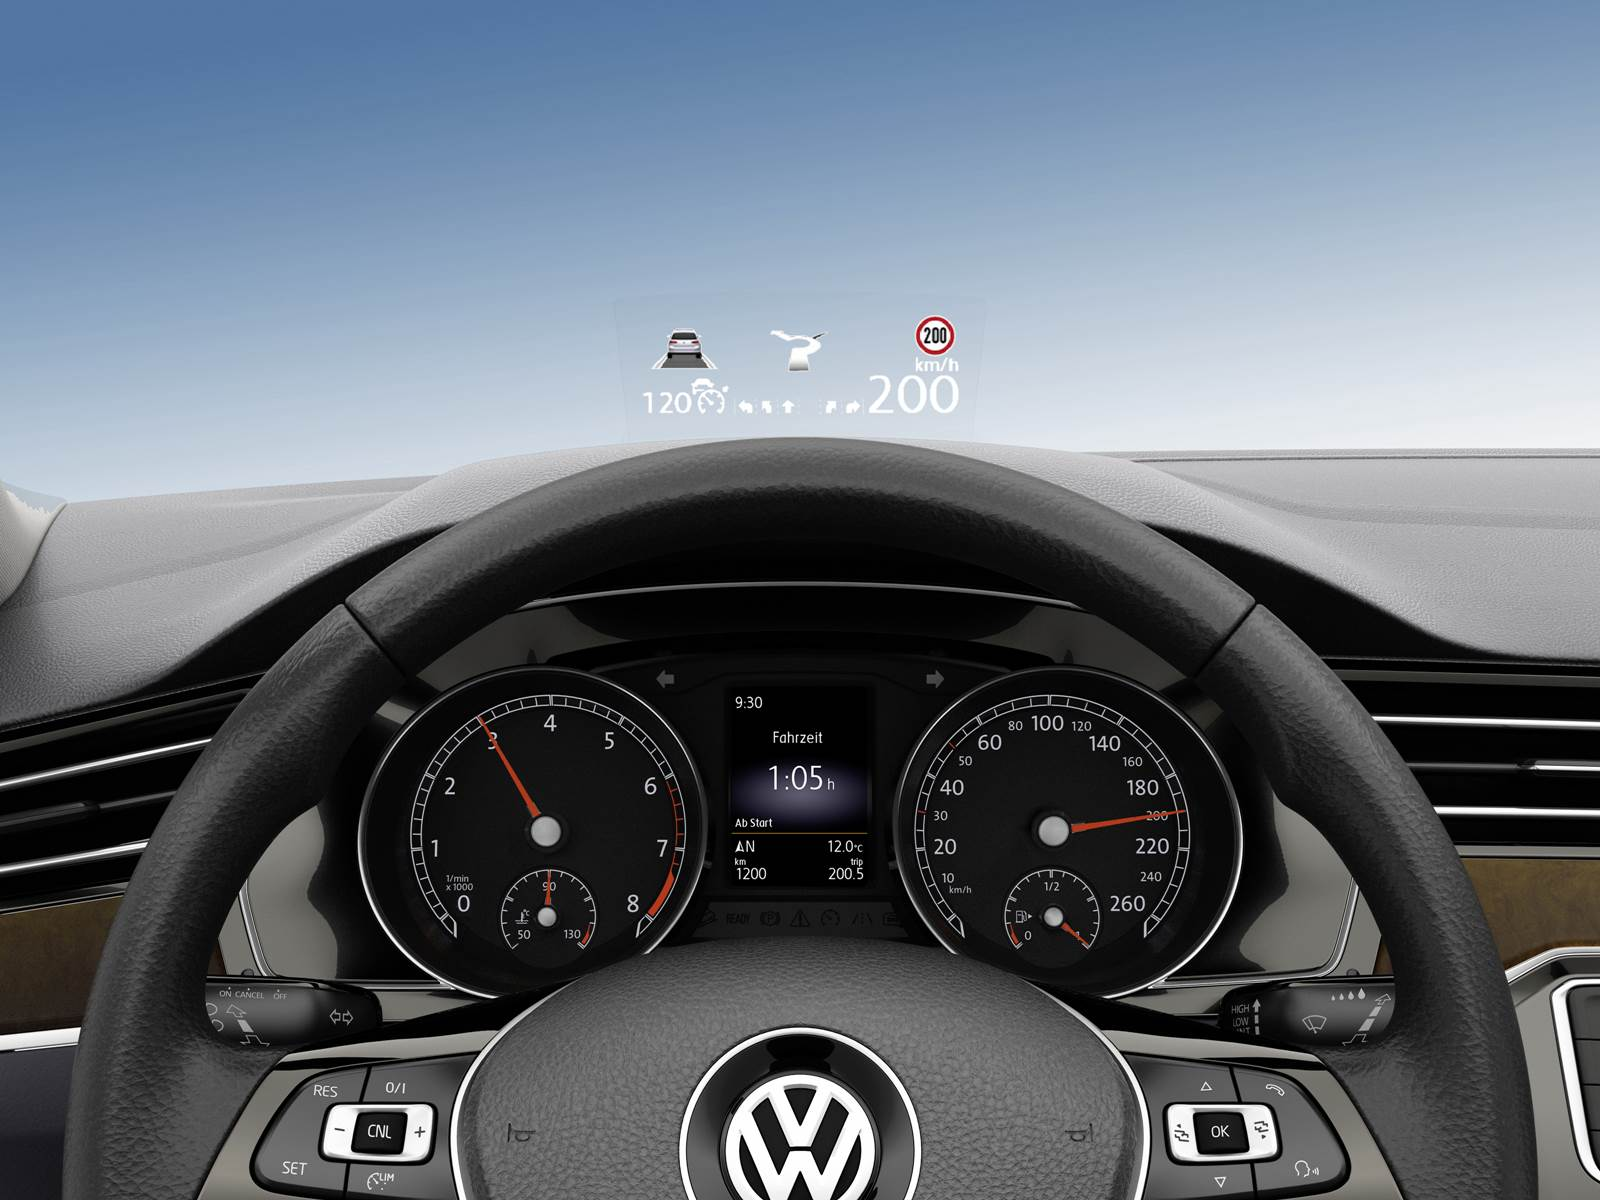 VW Golf VII 2017 - head-up display